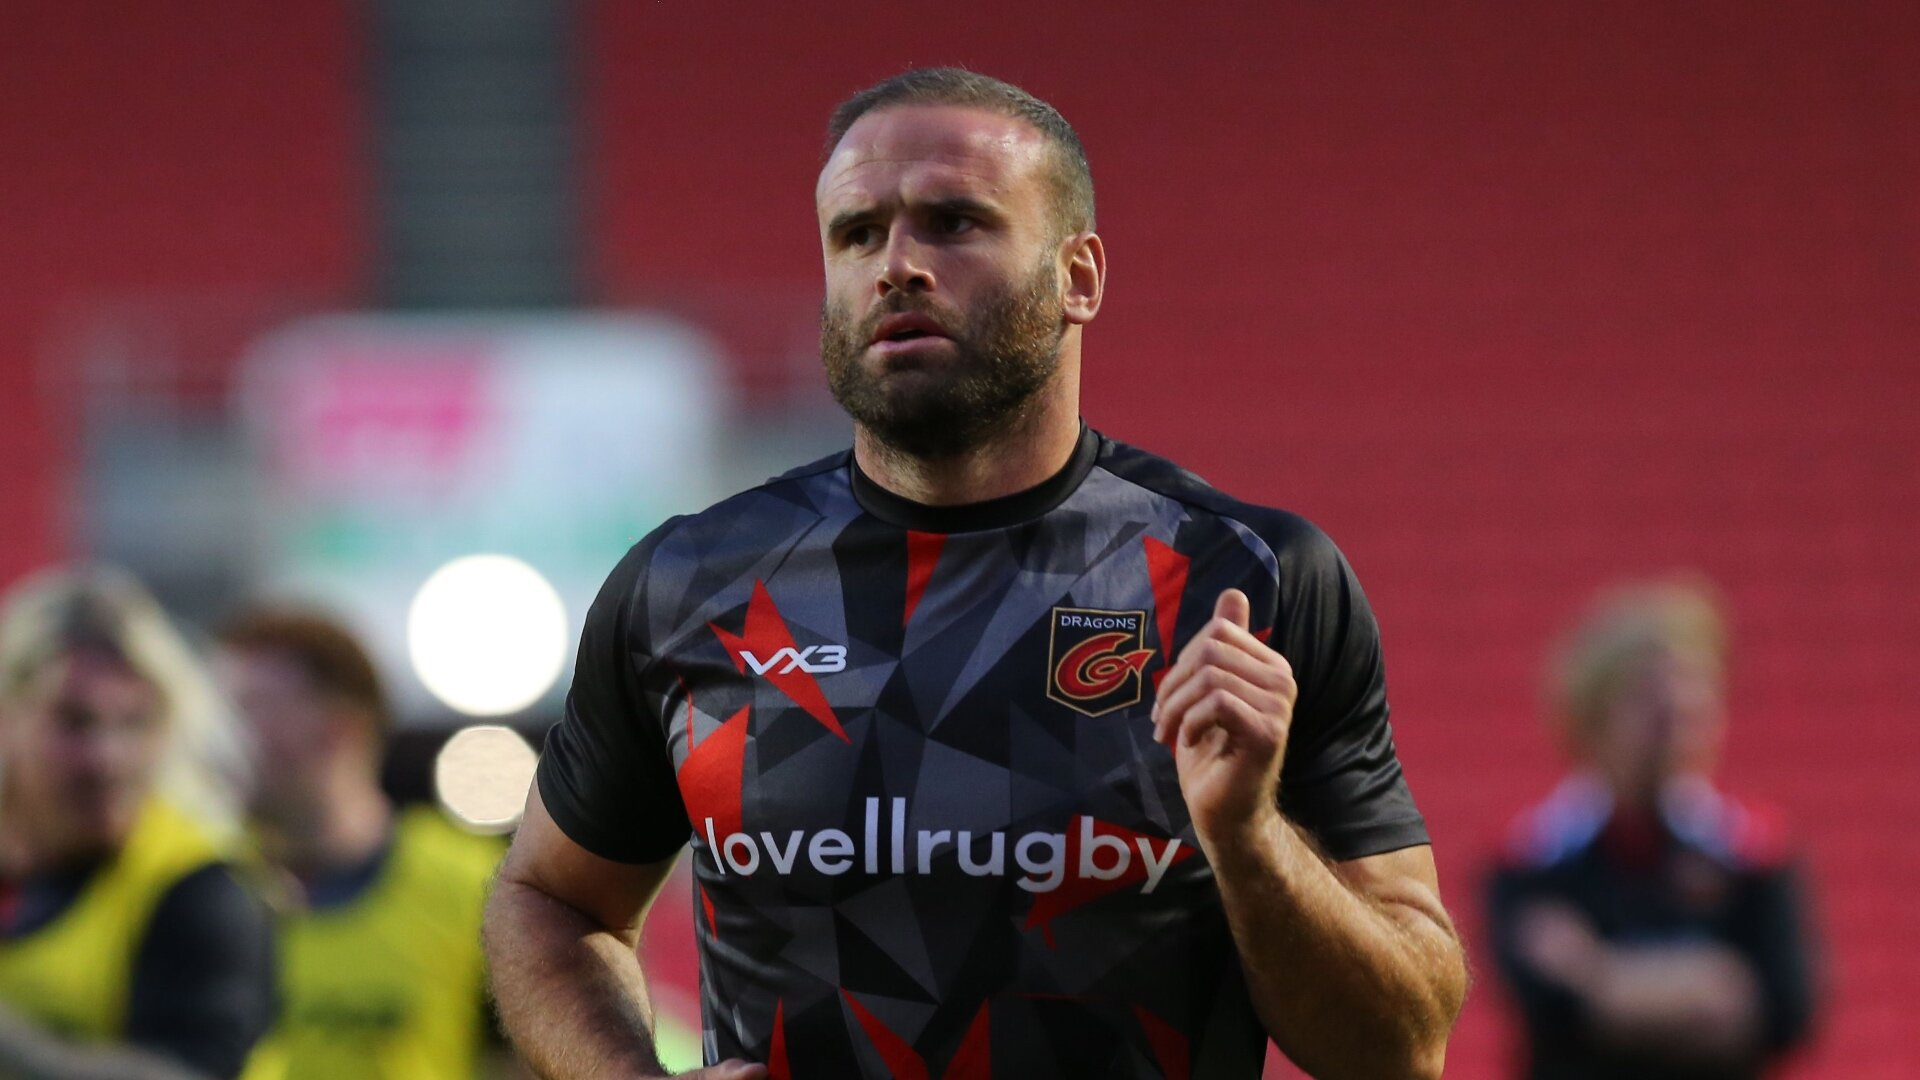 He's 33 and a qualified doctor but Jamie Roberts fears retiring from rugby